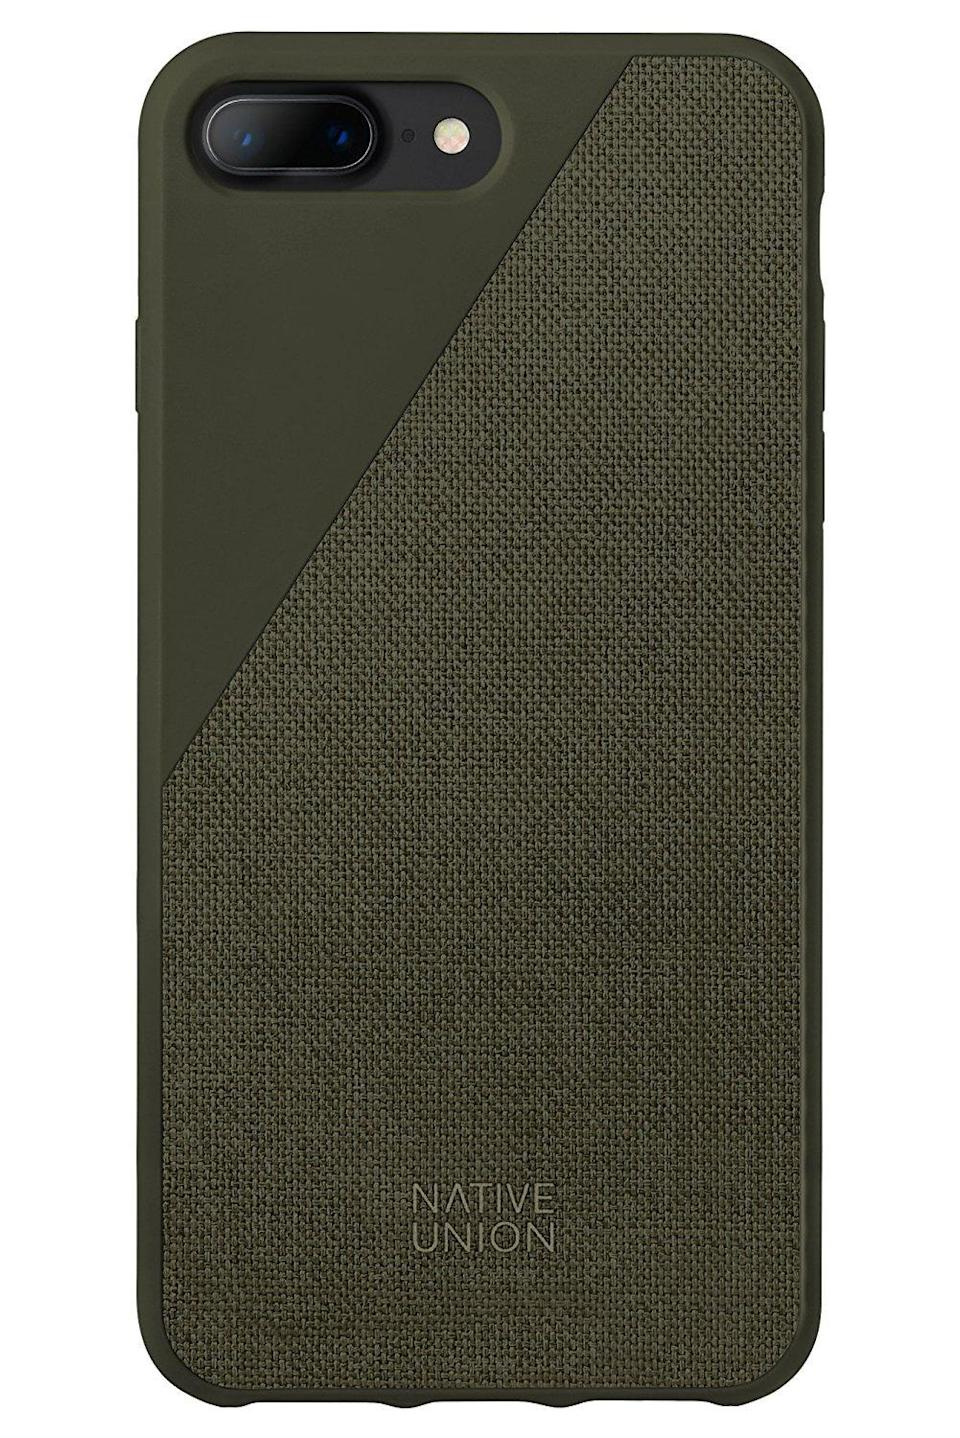 "<p>If you're looking for the highest-quality case with more of a unique look and feel, the <a href=""https://www.popsugar.com/buy/Native-Union-CLIC-Canvas-120857?p_name=Native%20Union%20CLIC%20Canvas&retailer=amazon.com&evar1=news%3Aus&evar9=44473996&evar98=https%3A%2F%2Fwww.popsugar.com%2Fnews%2Fphoto-gallery%2F44473996%2Fimage%2F44711787%2FNative-Union-CLIC-Canvas&prop13=desktop&pdata=1"" rel=""nofollow noopener"" target=""_blank"" data-ylk=""slk:Native Union CLIC Canvas"" class=""link rapid-noclick-resp"">Native Union CLIC Canvas</a> ($39) is unquestionably the case for you. Say goodbye to all that plastic and silicone and embrace the canvas! </p>"